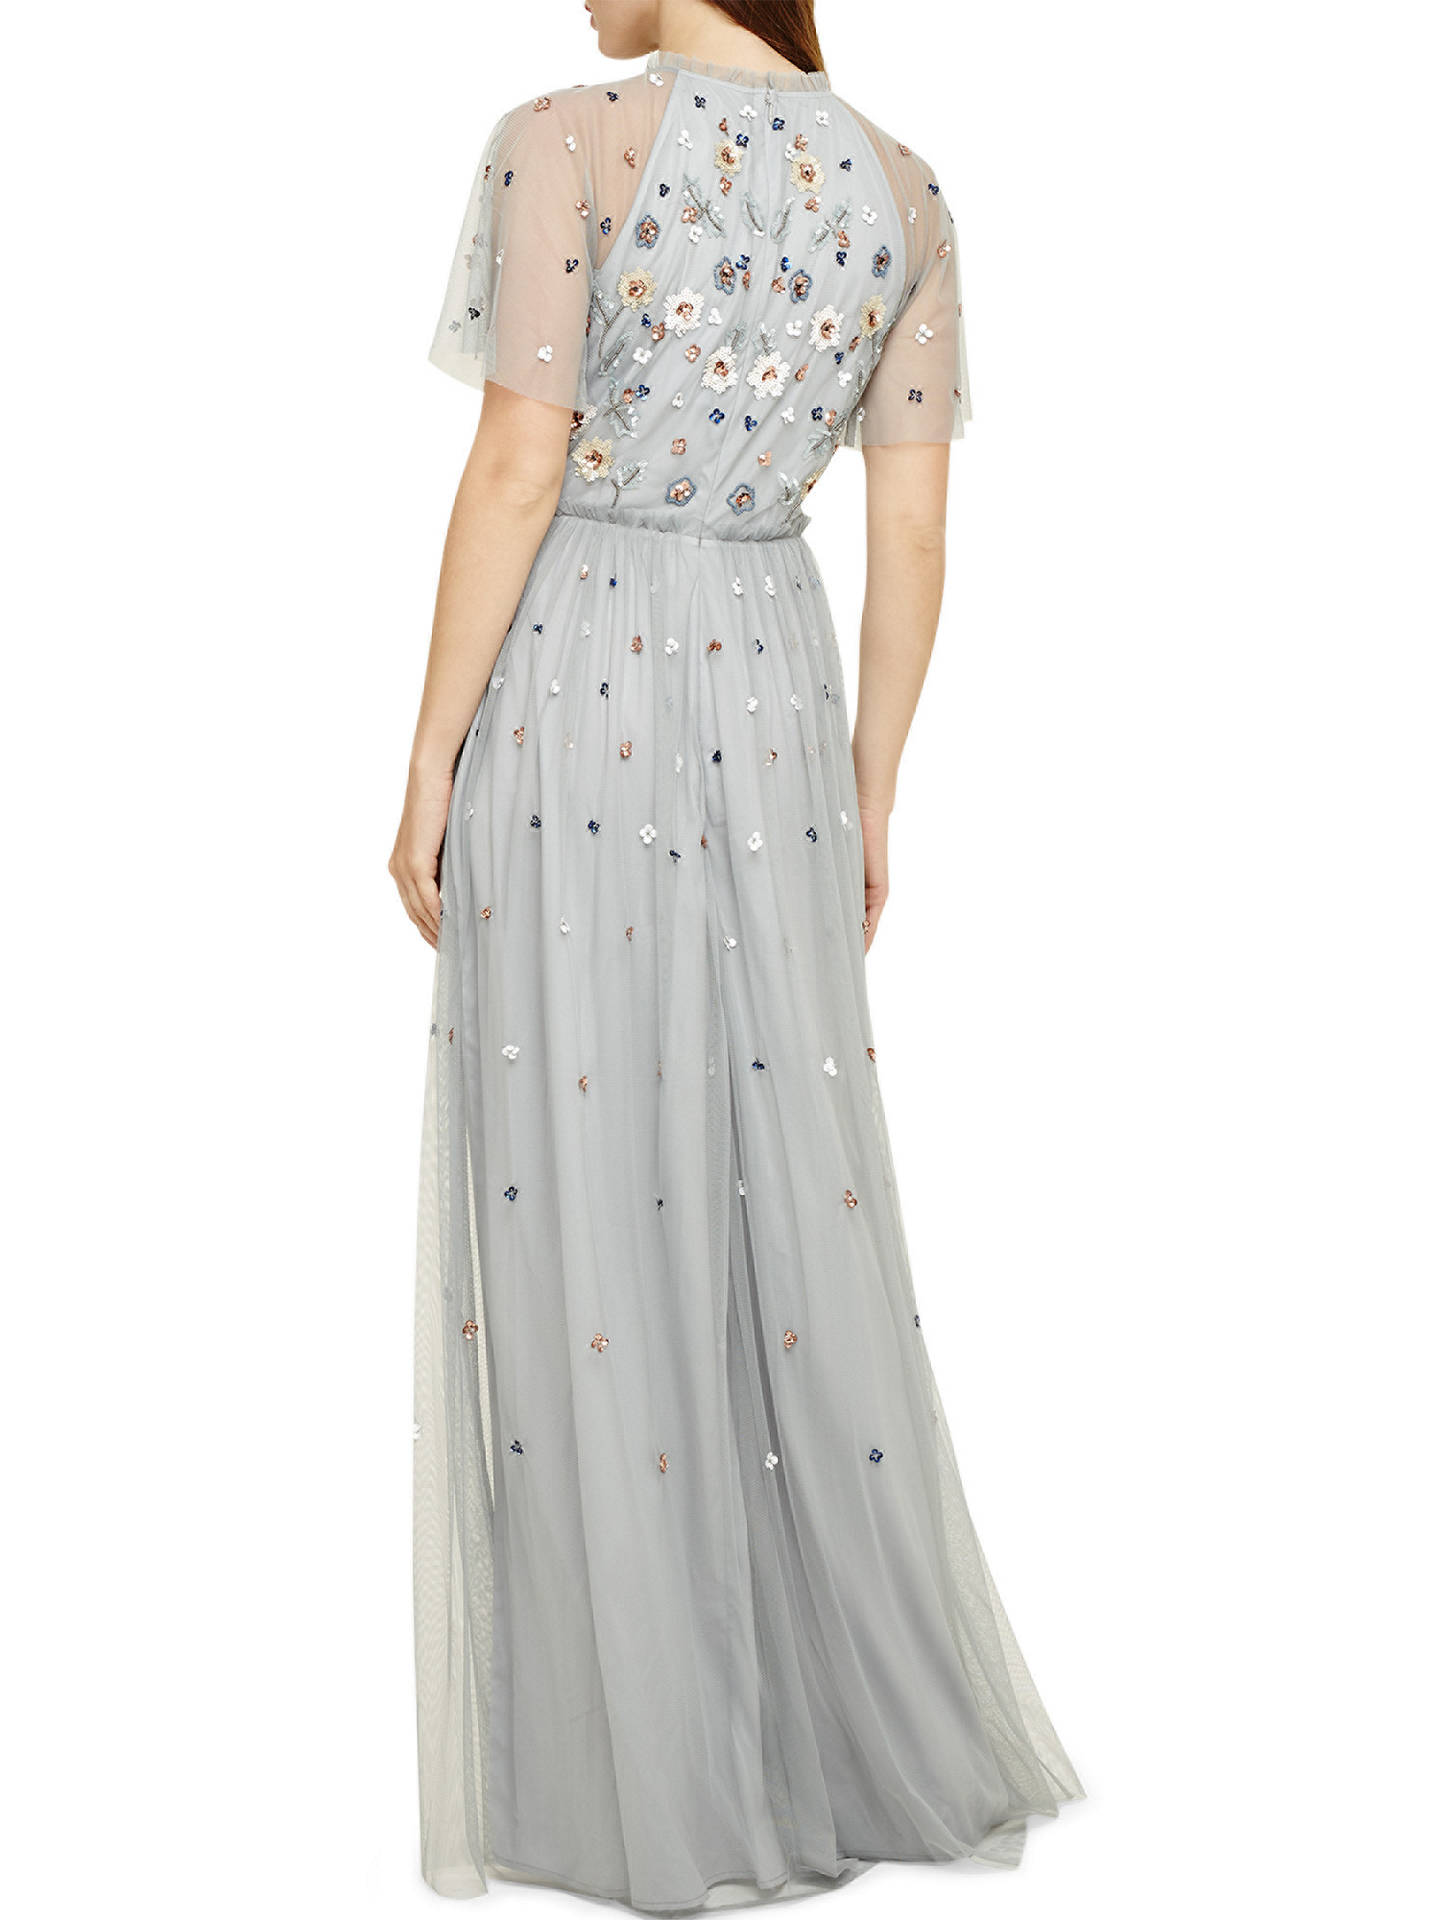 Online replica john lewis sale dresses phase eight see movies yoga